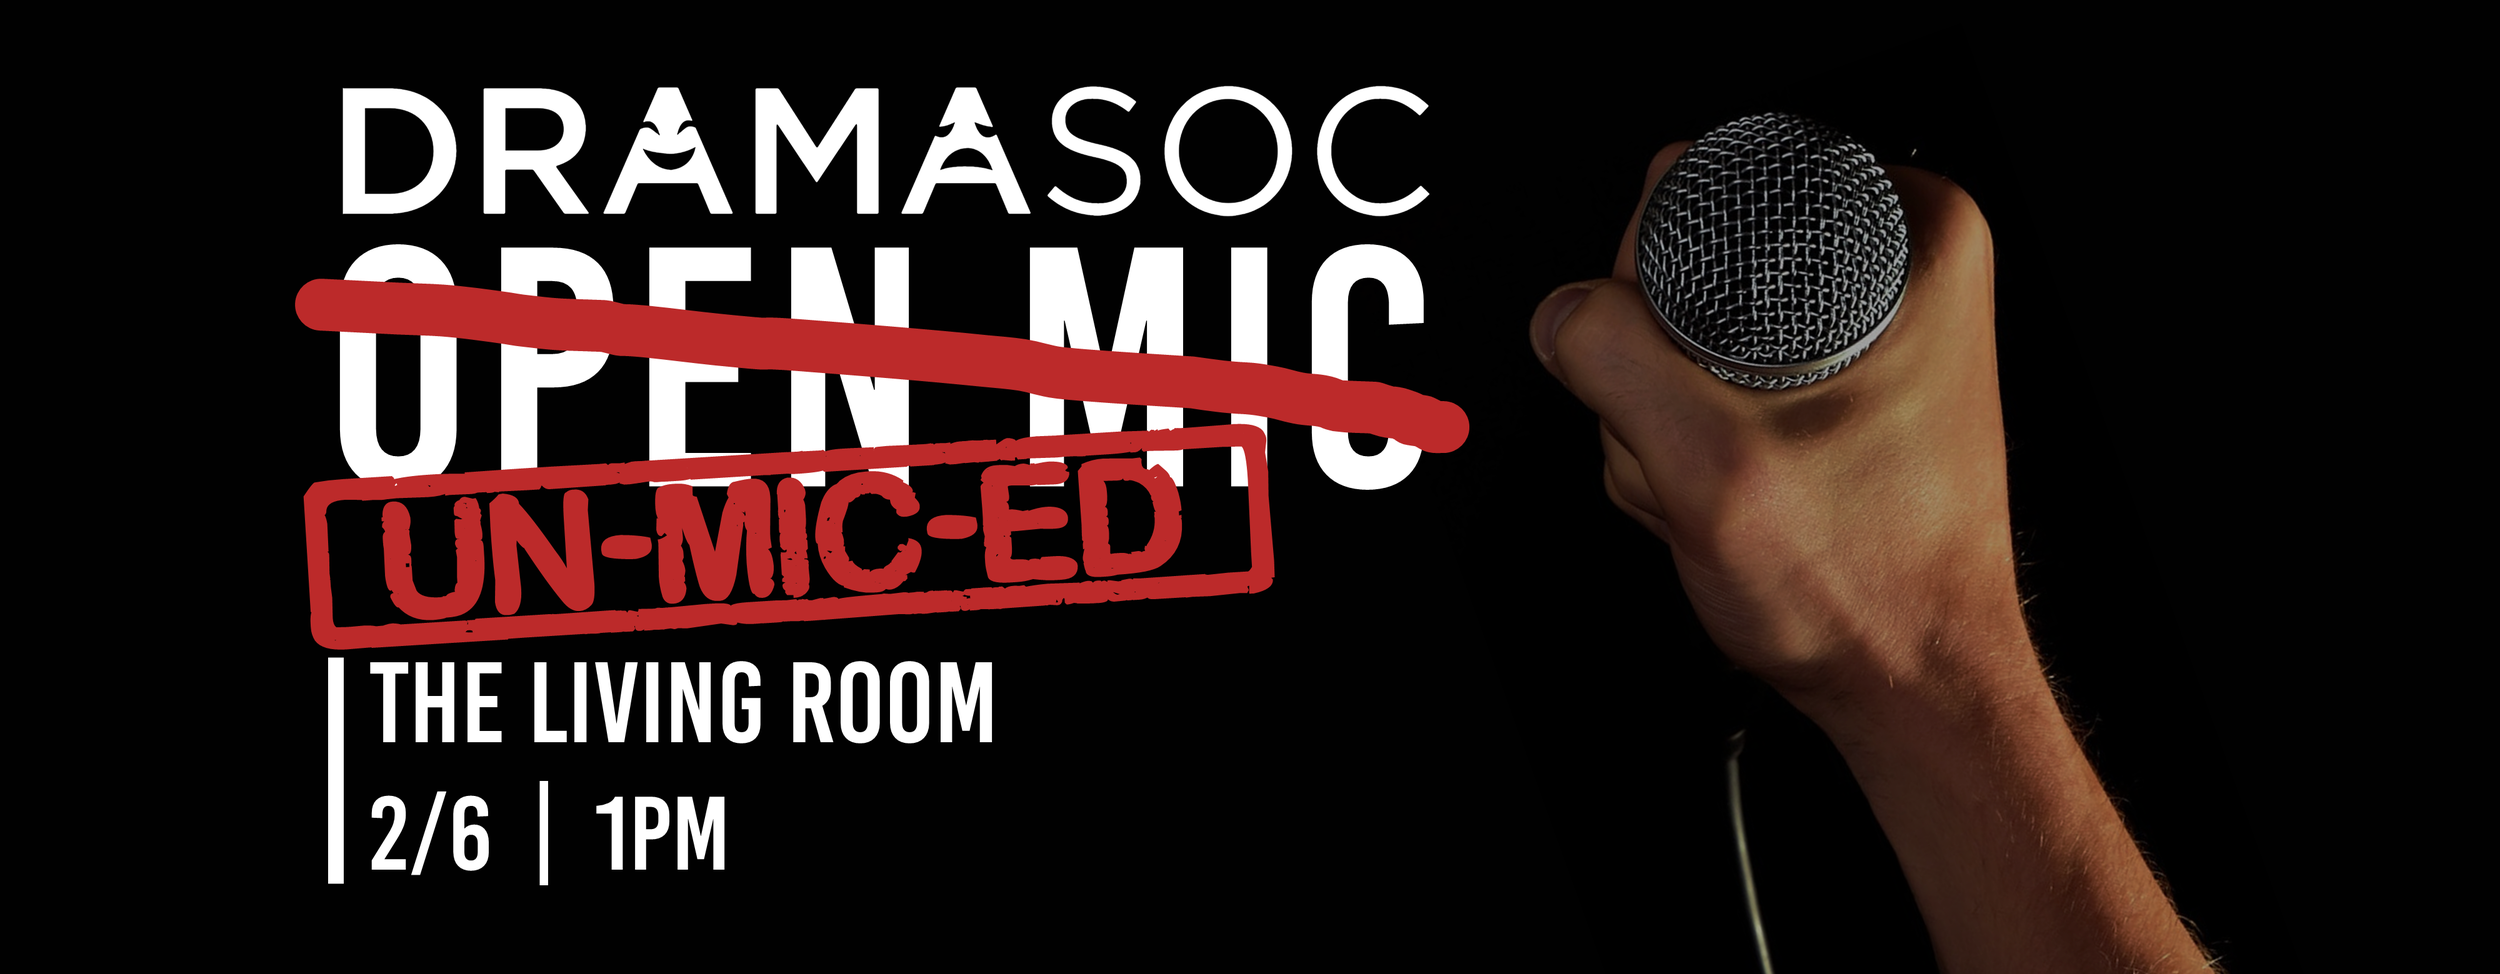 UN-MIC-ED Banner.png